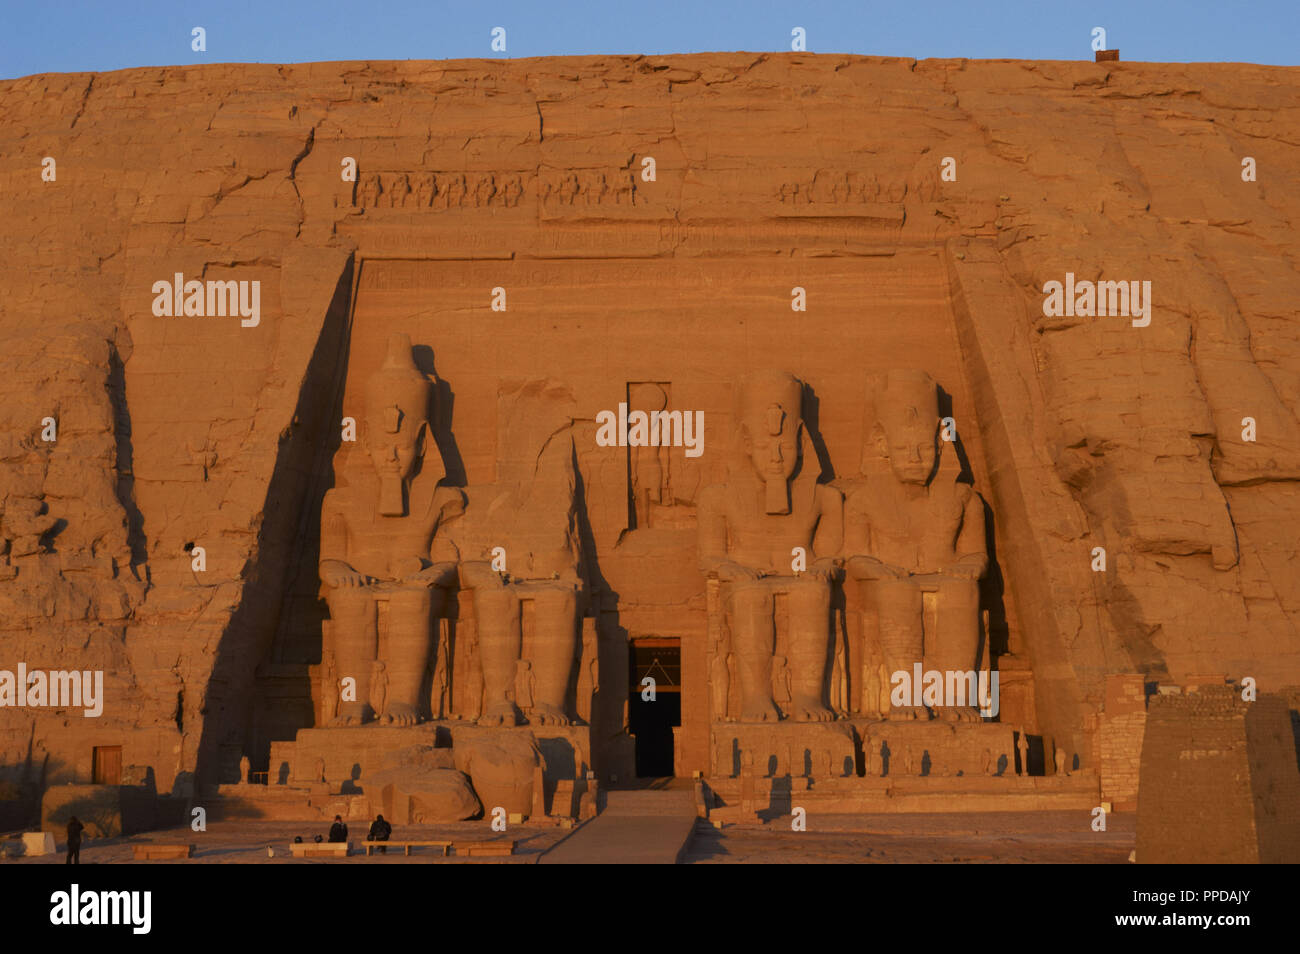 Egyptian art. Great Temple of Ramses II. Four colossal statues depicting the pharaoh Ramses II (1290-1224 BC) seated with the nemes head and surmounted by the double crown. 19th Dynasty. New Kingdom.  Abu Simbel. Egypt. Stock Photo